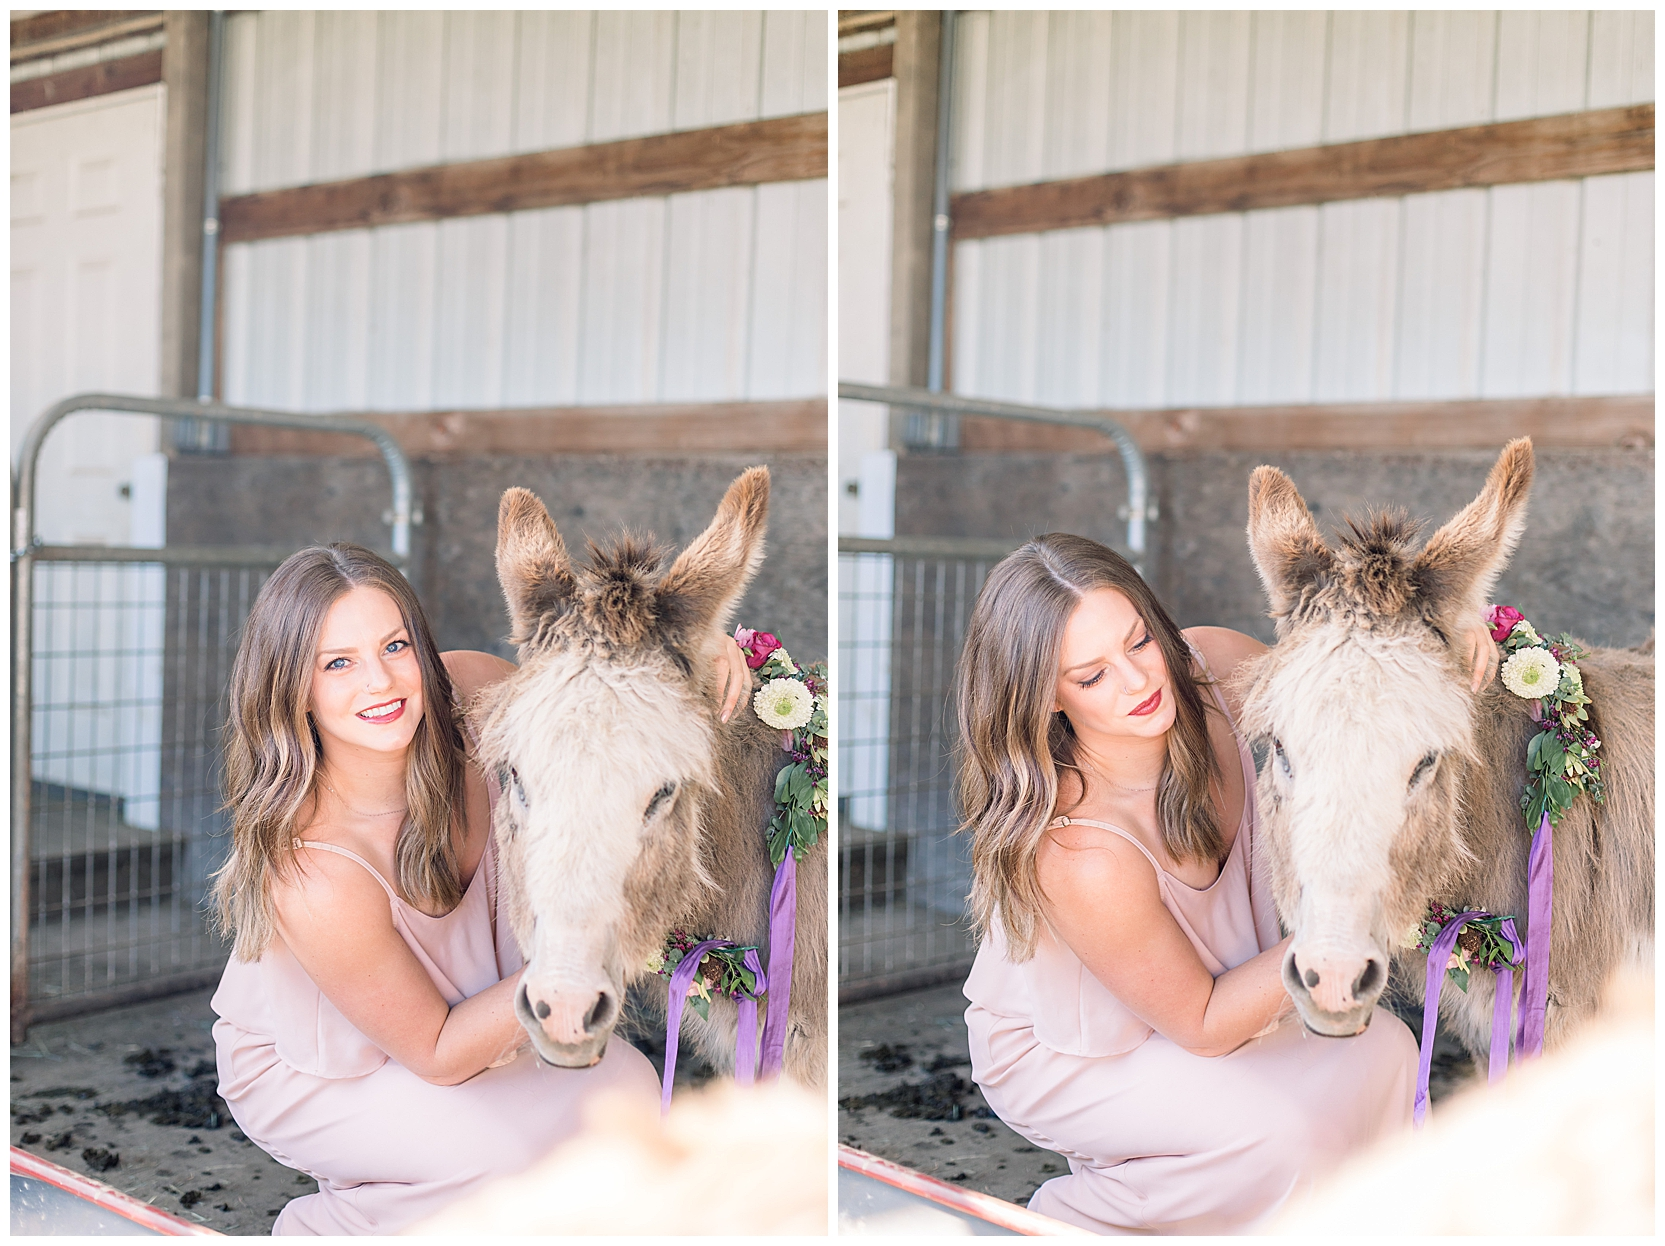 jessicafredericks_st petersburg_wedding_photographer_bridesmaid_farm_donkey_flower crown_inspo_0011.jpg